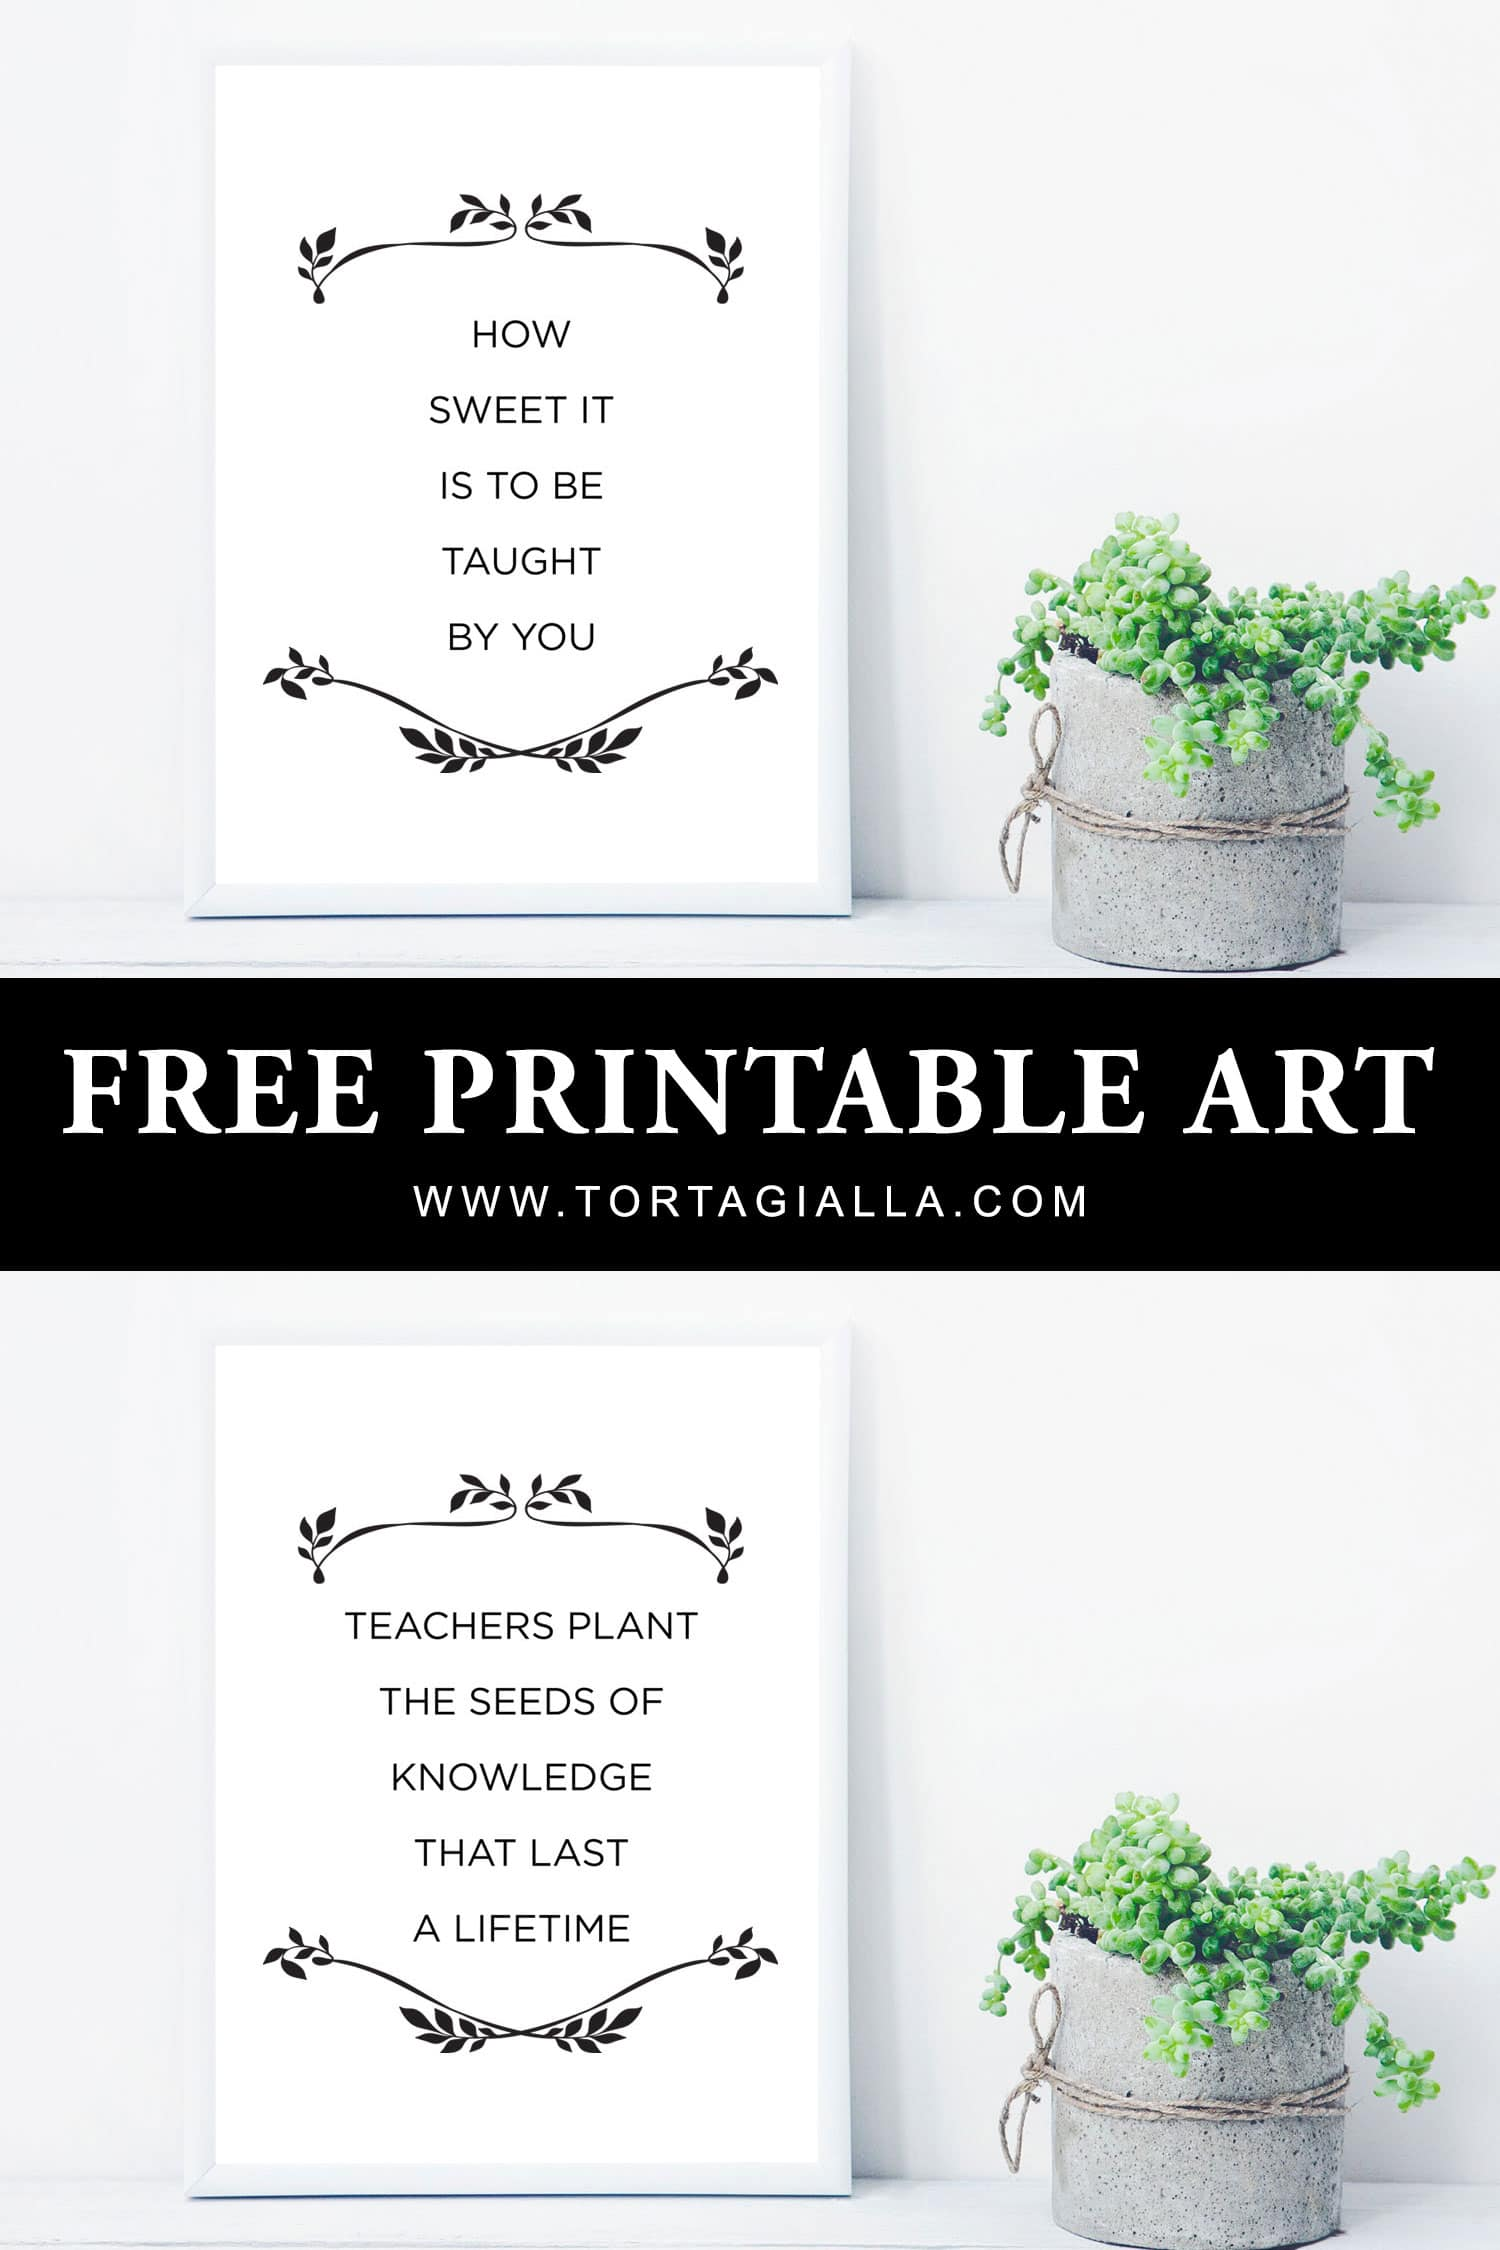 photo regarding Printable Teacher Quotes titled Absolutely free Printable Instructor Appreciation Prices tortagialla